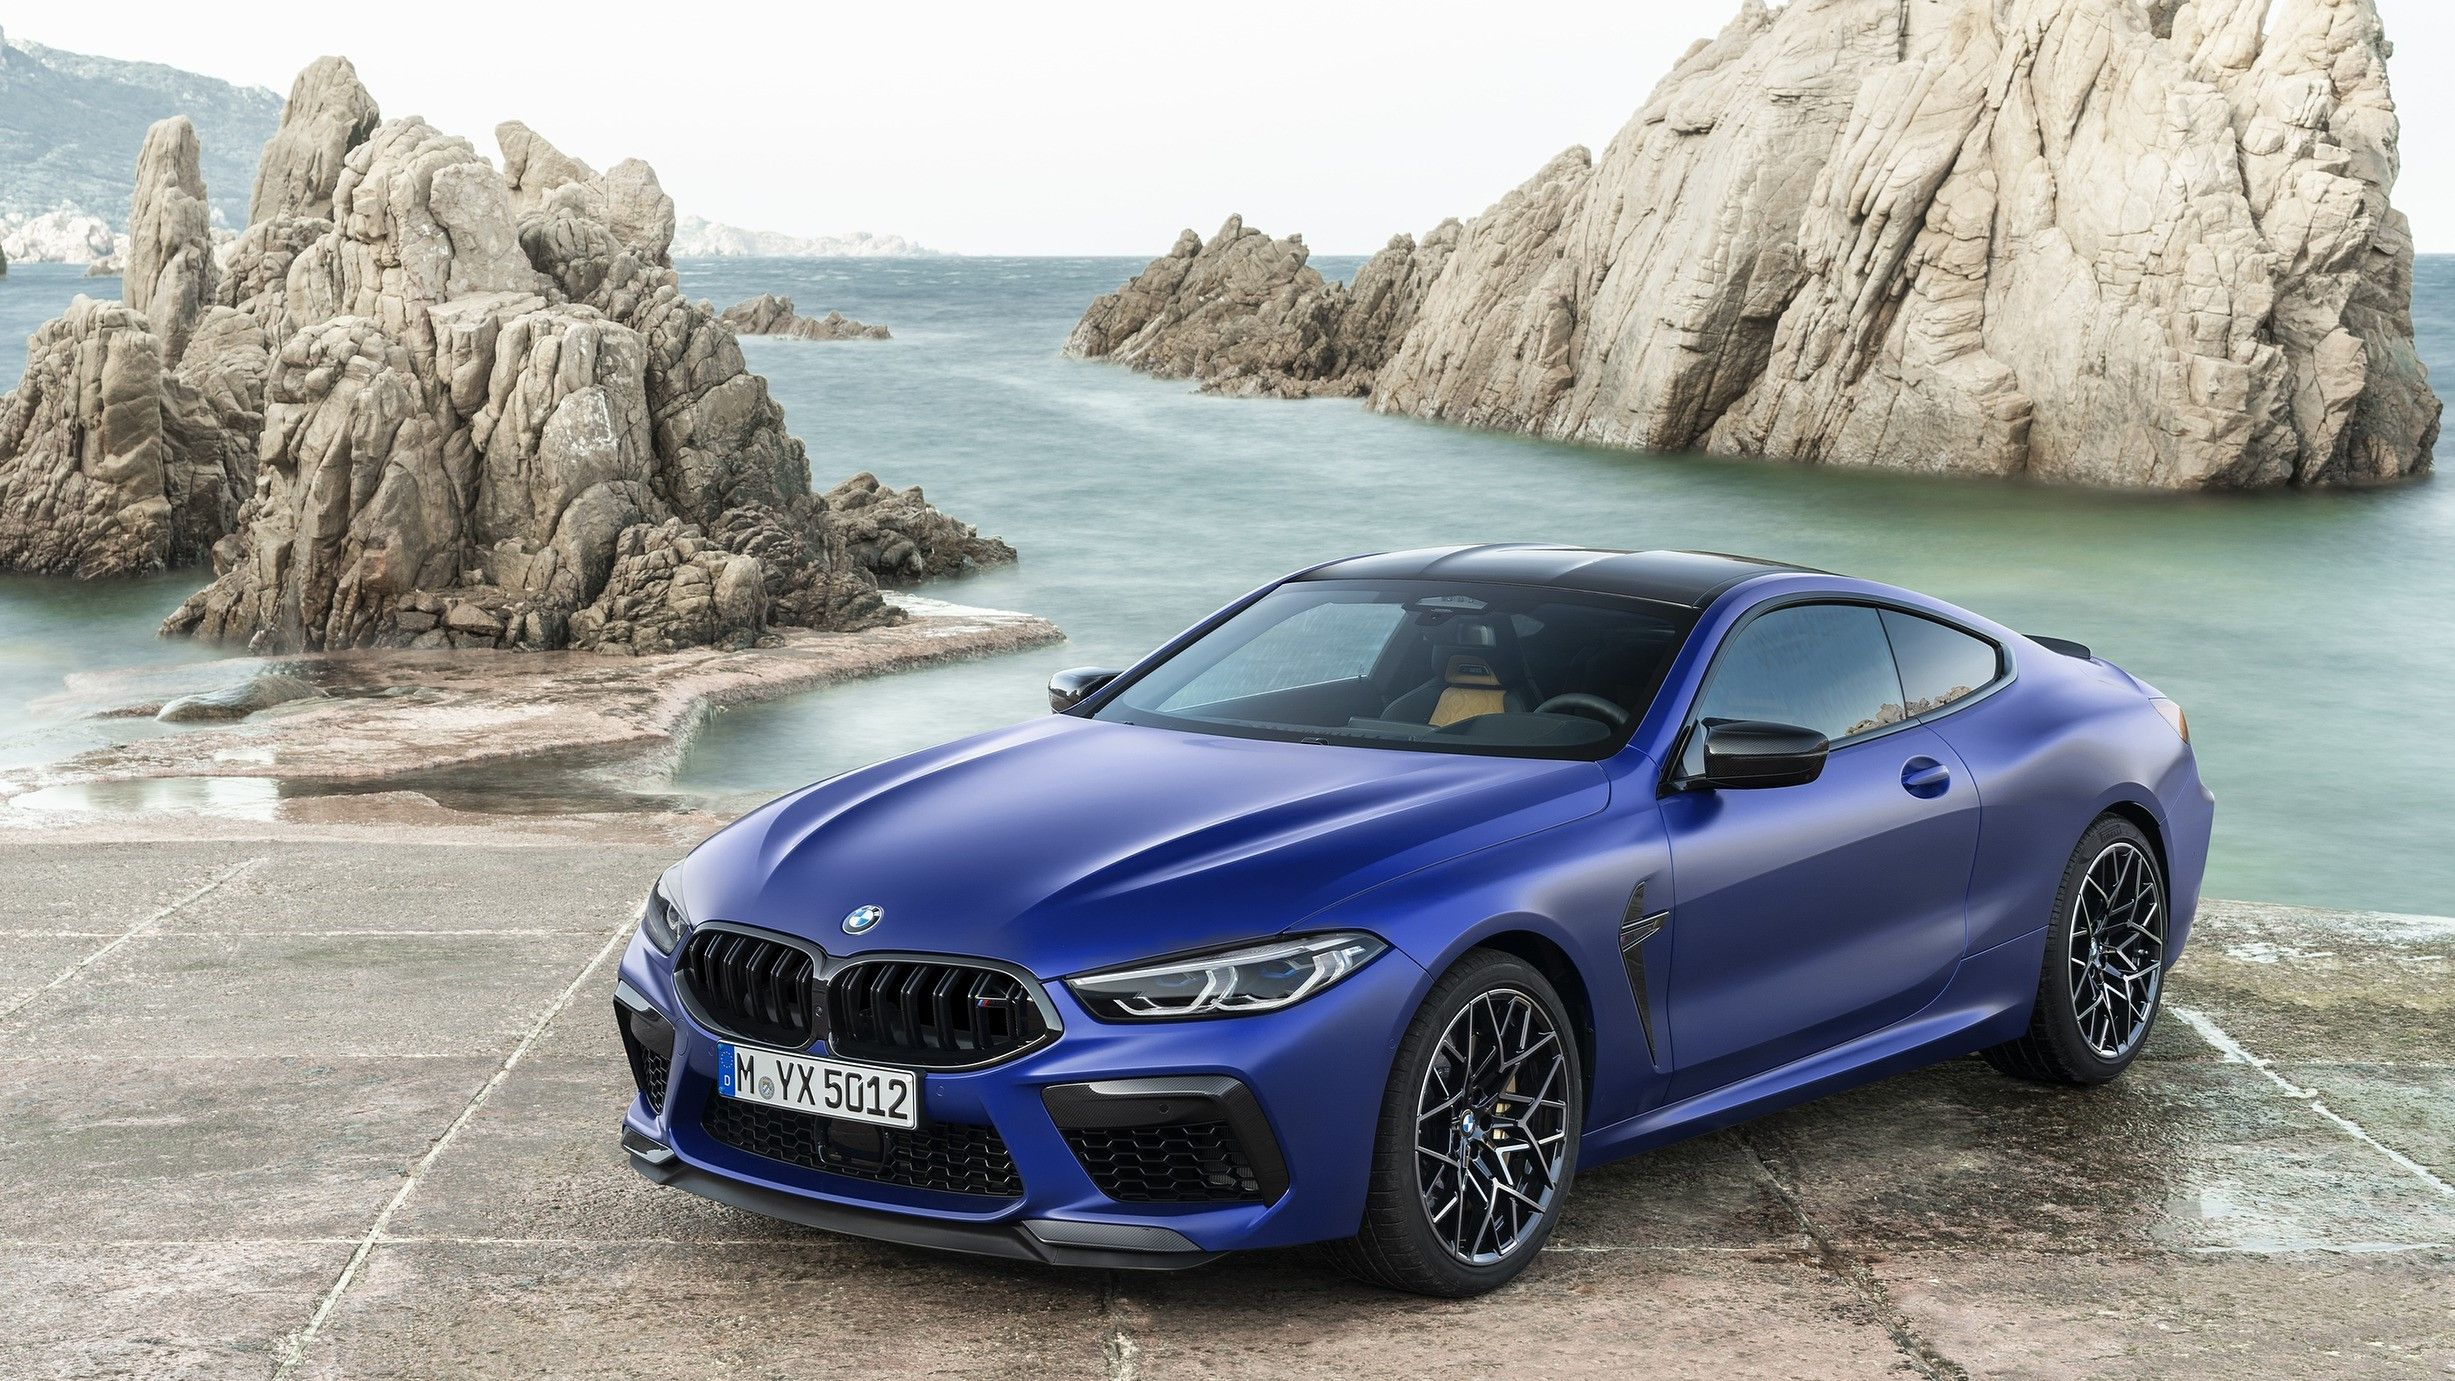 2021 Bmw M8 Review Trims Features Price Performance Mpg Figures And Rivals